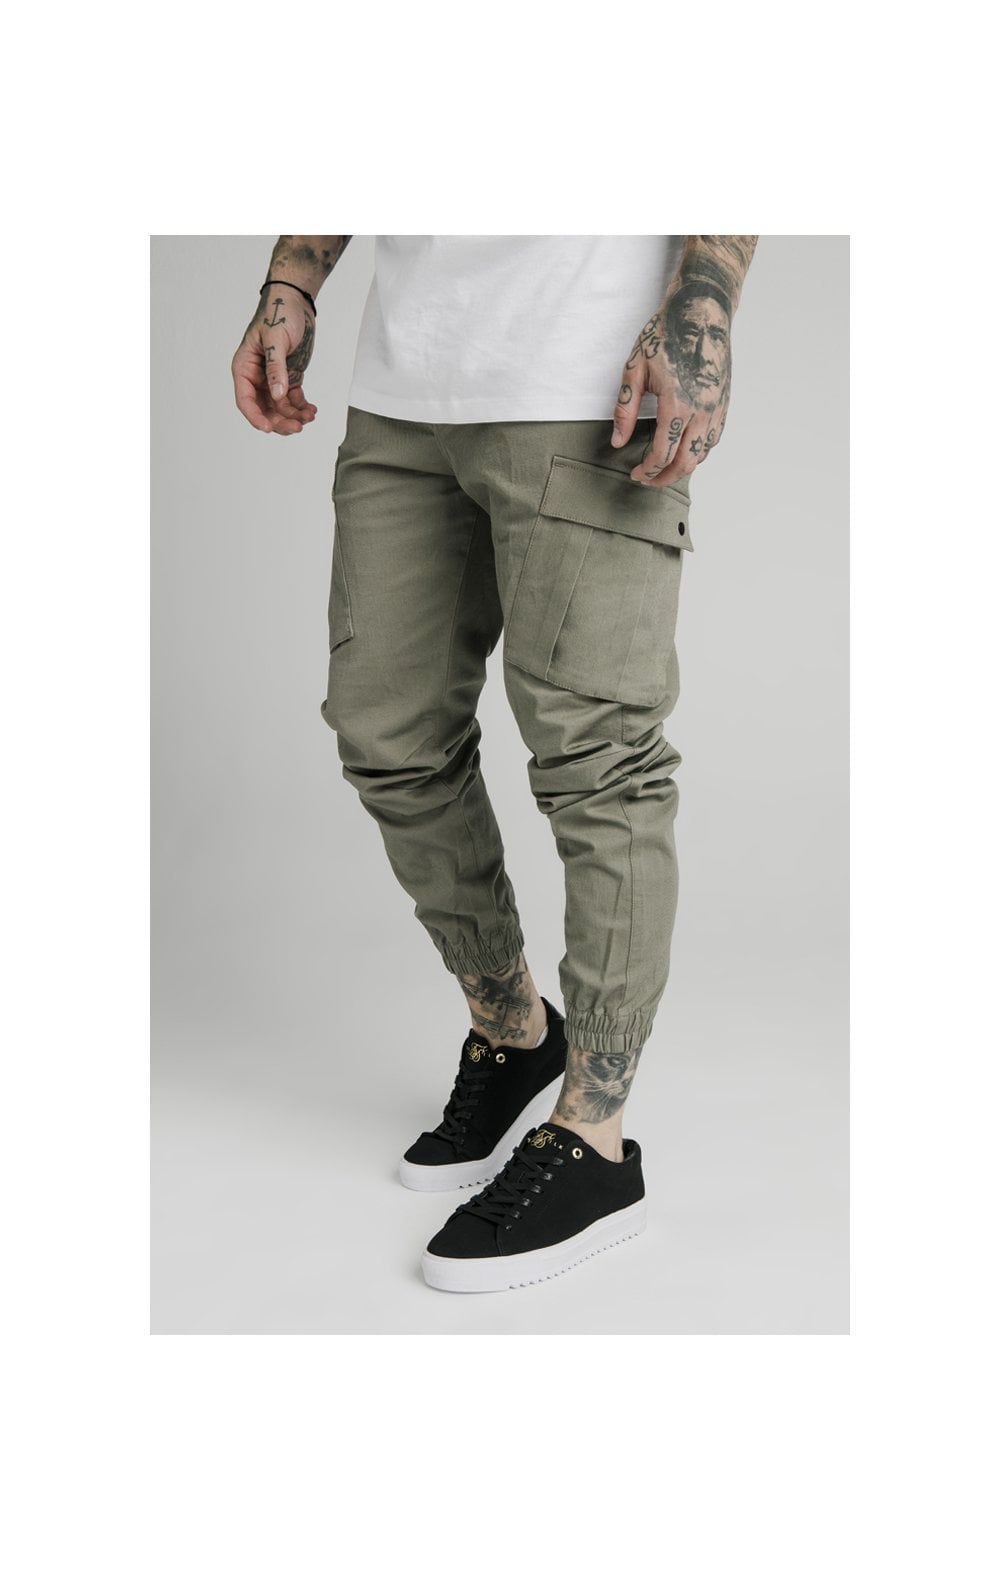 Load image into Gallery viewer, SikSilk Cargo Pants - Khaki (1)